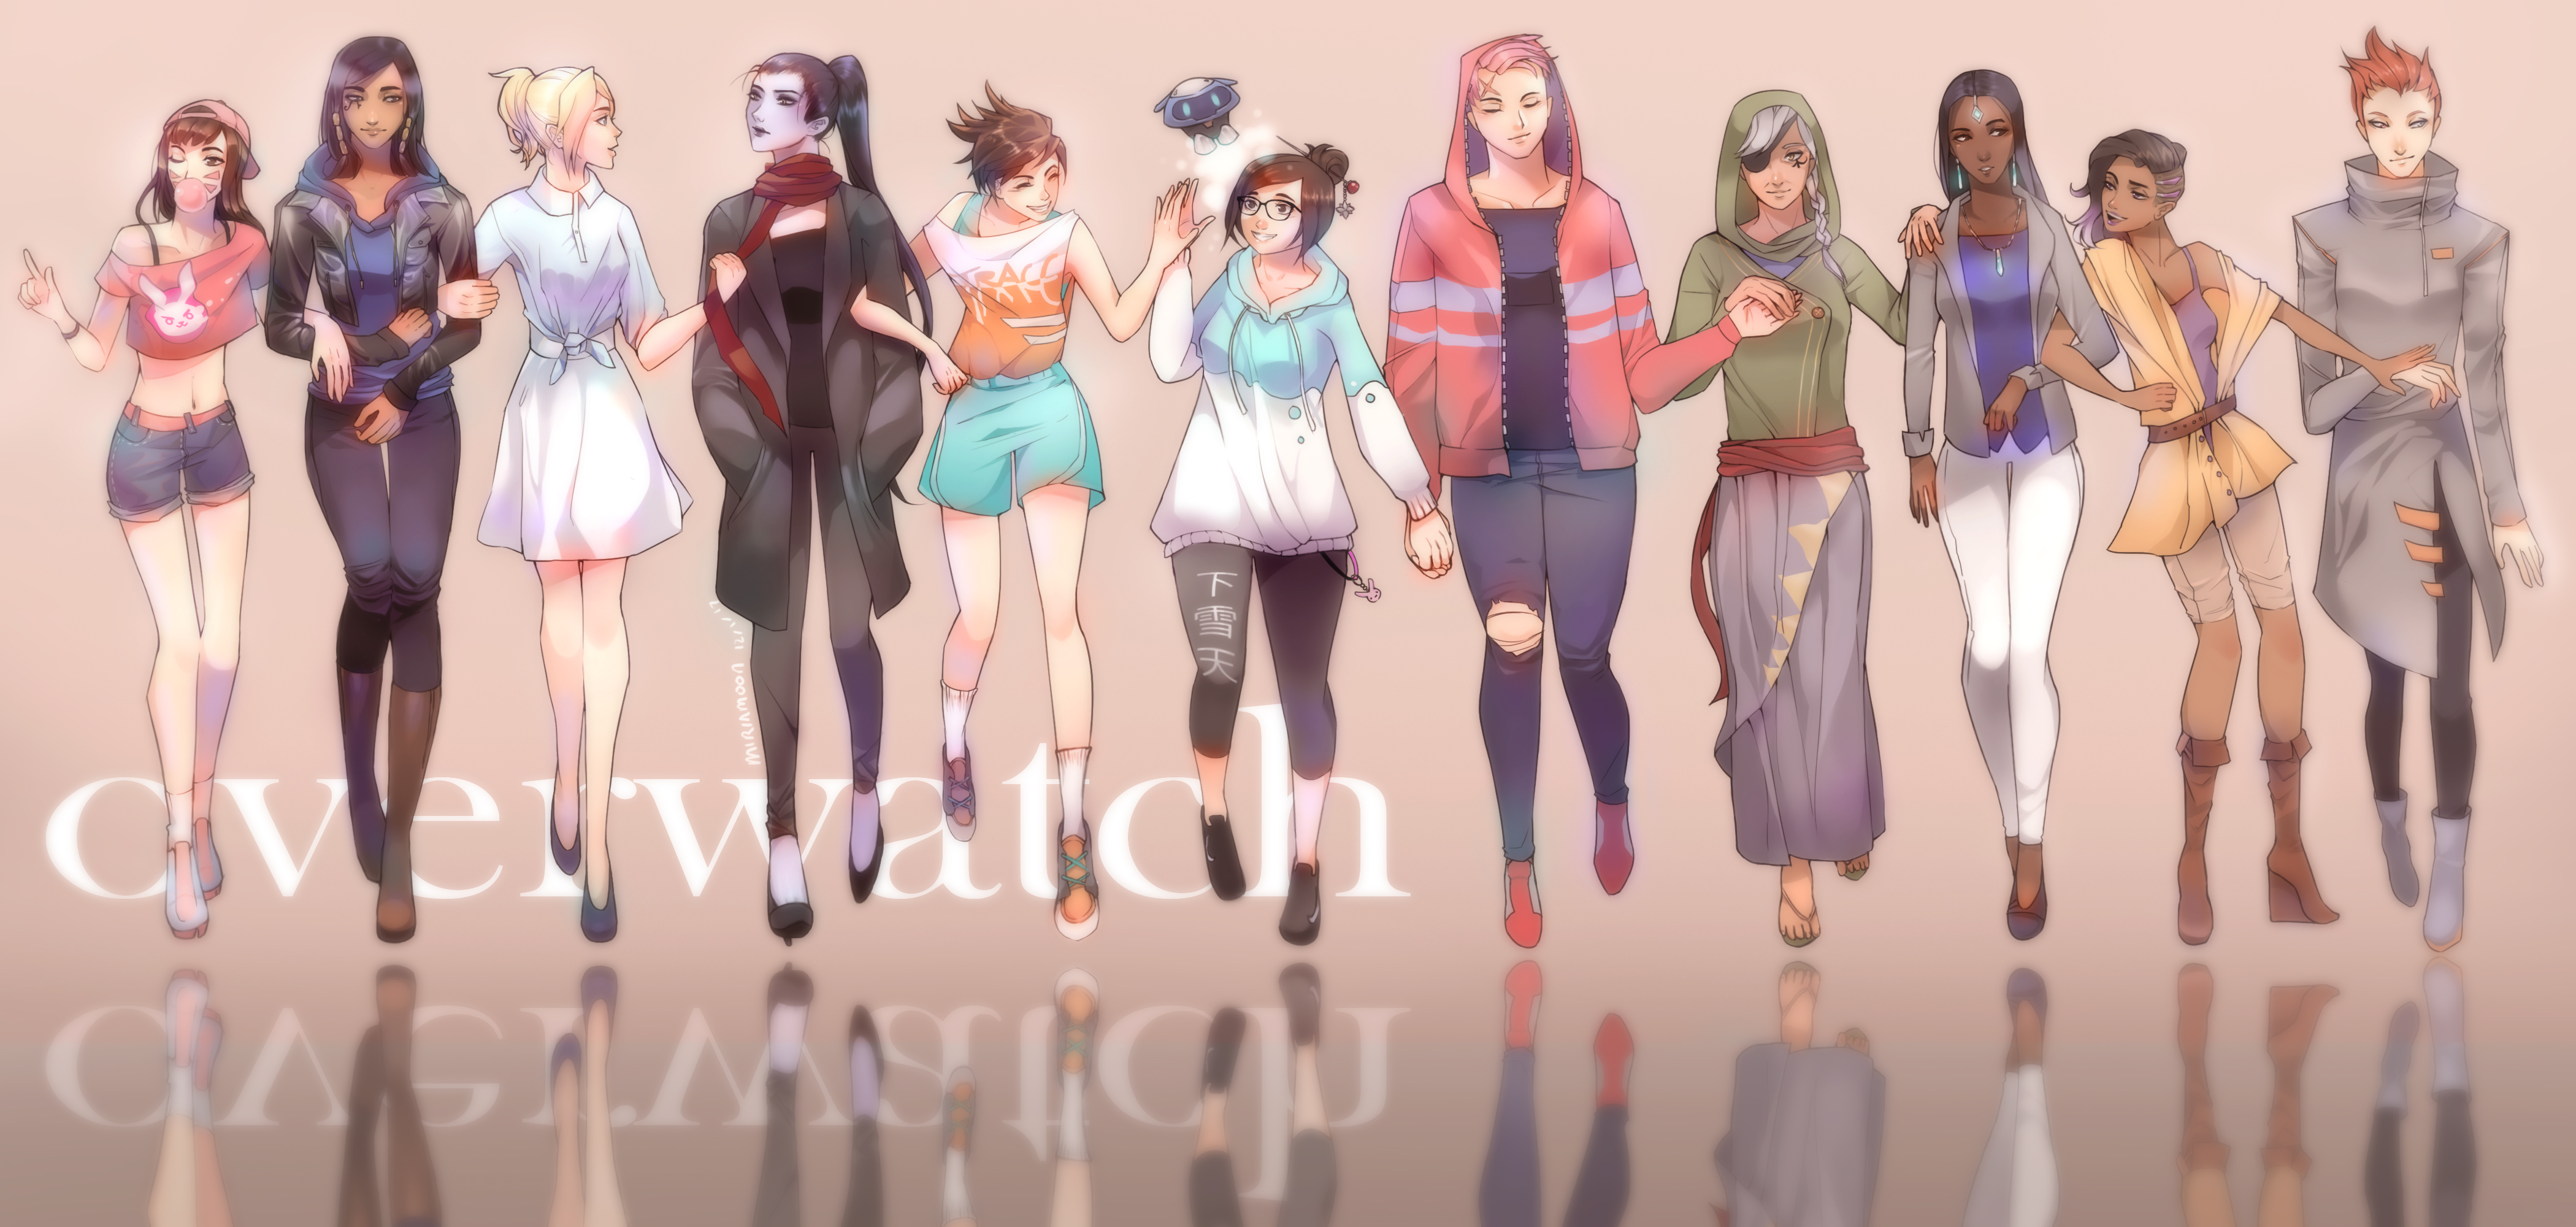 Overwatch Girls Casual Outfits by Miriam-Moon on DeviantArt